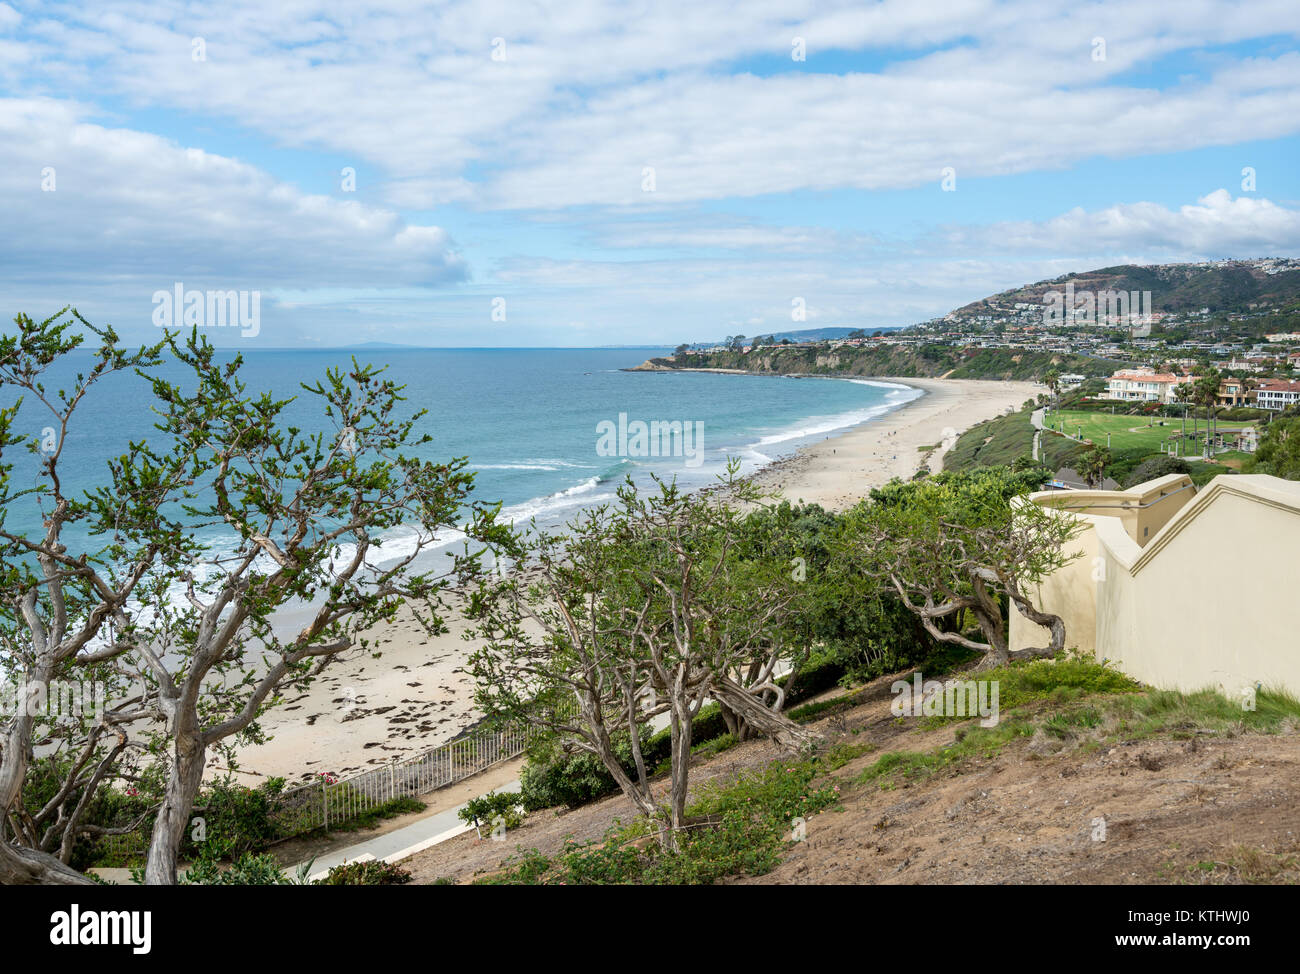 View of the coastline at Dana Point in California - Stock Image